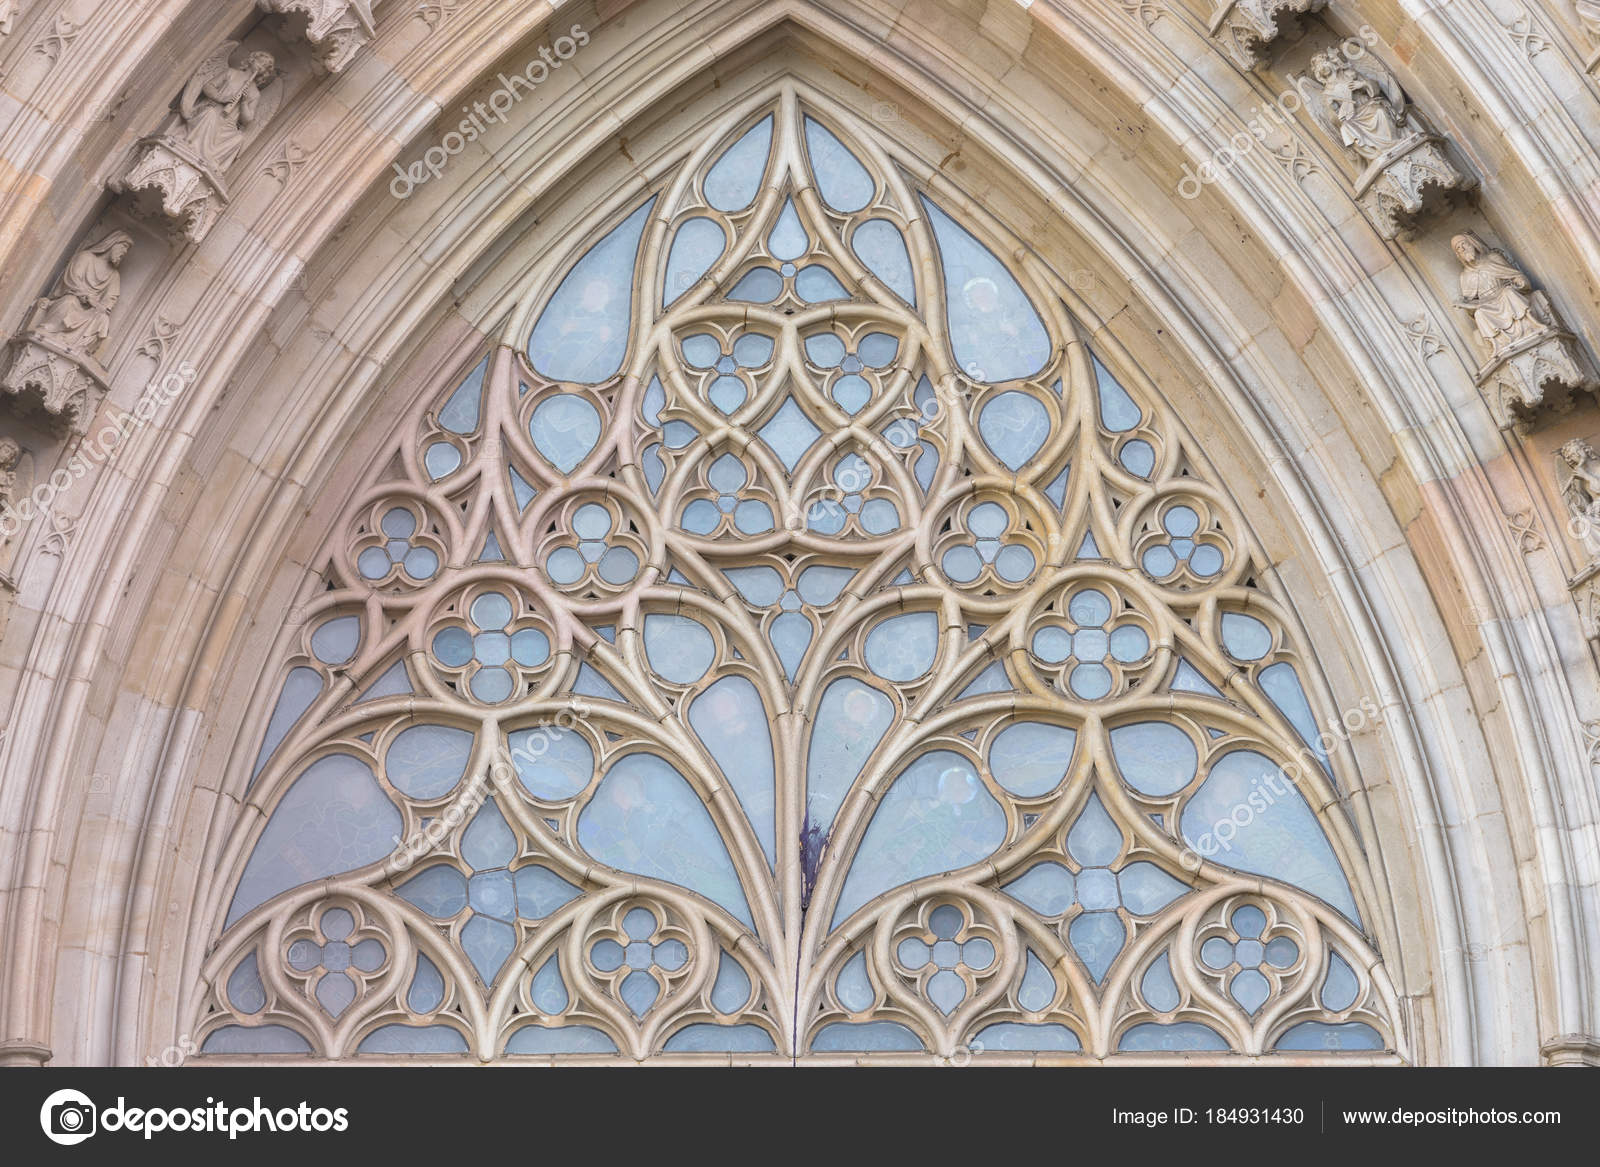 Close Up View To The Architectural Detail Of A Church Rose Window In Barcelona Cathedral Gothic Quarter Barely Perceptible Stained Glass Inside